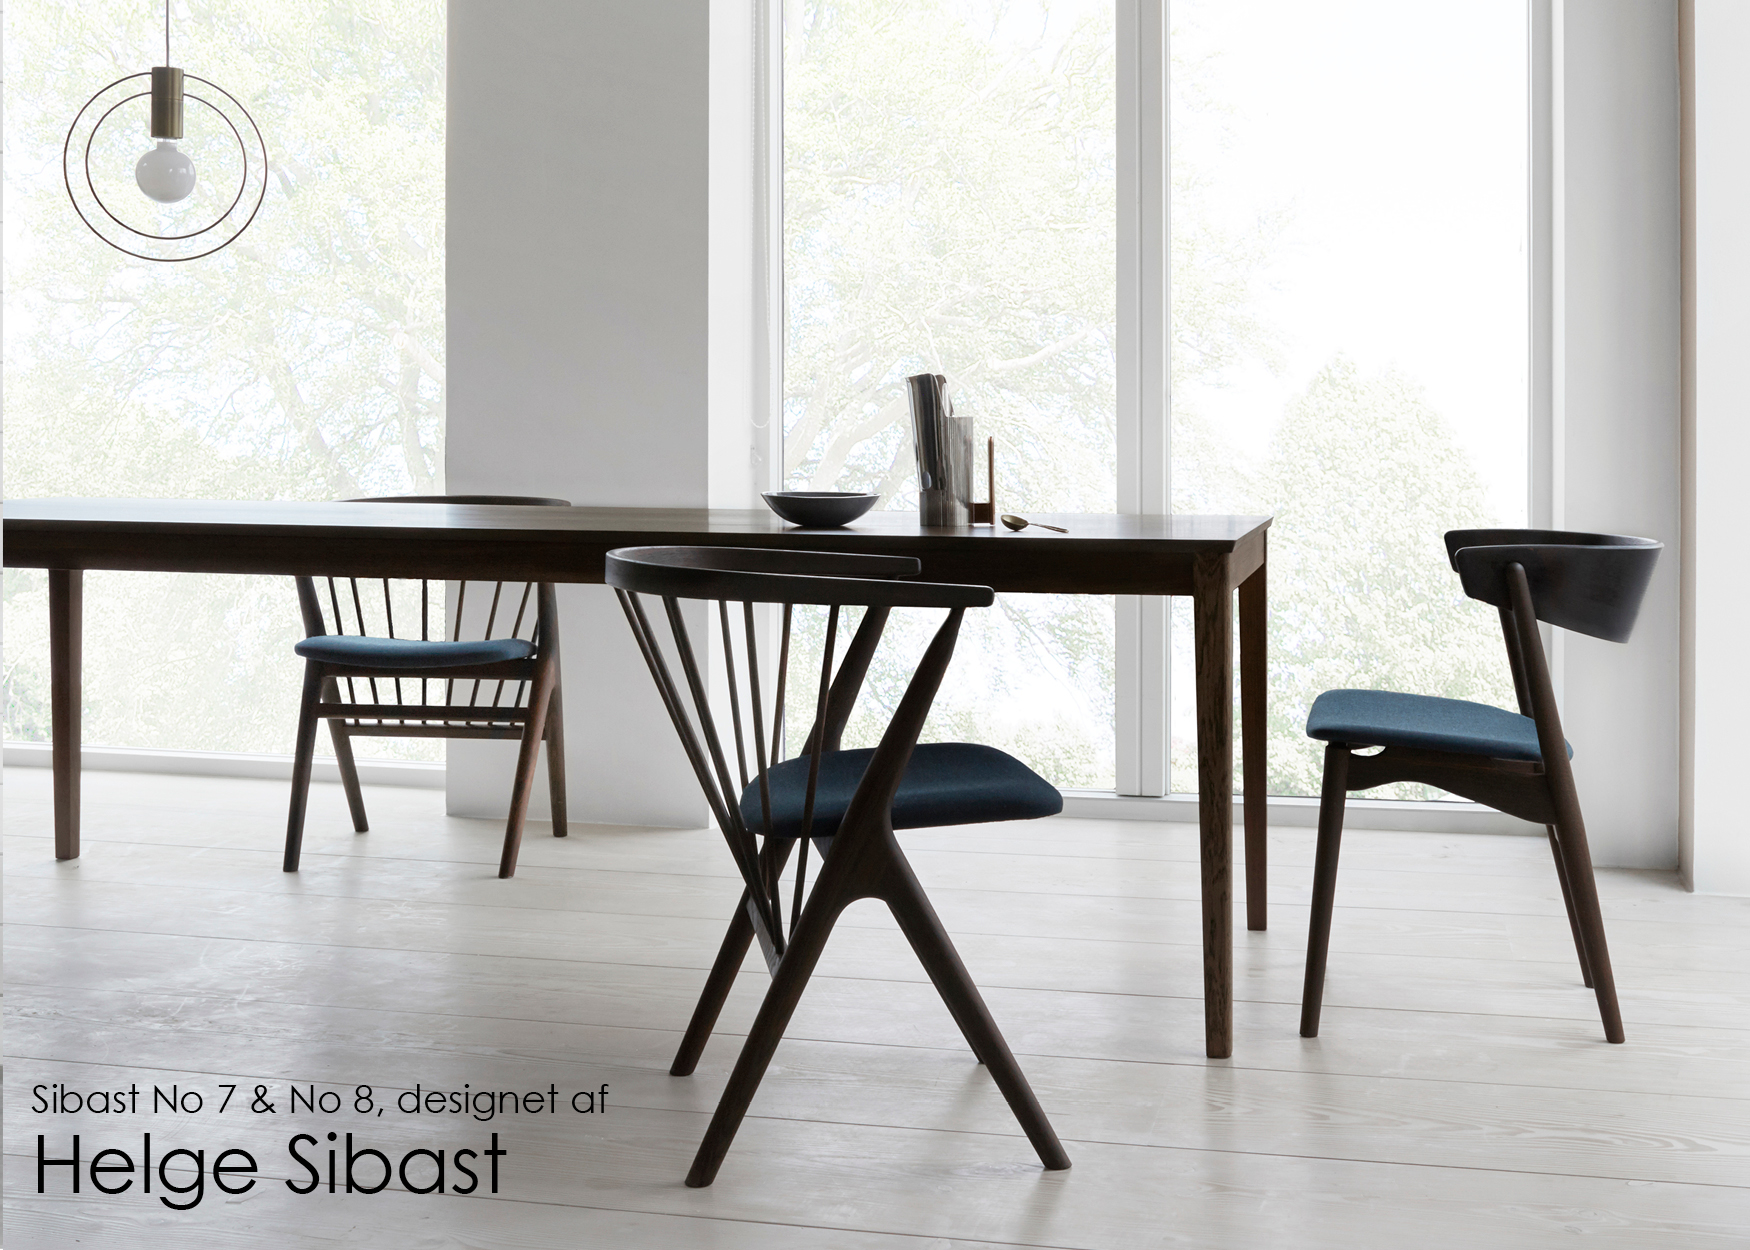 Shop Sibast Furniture